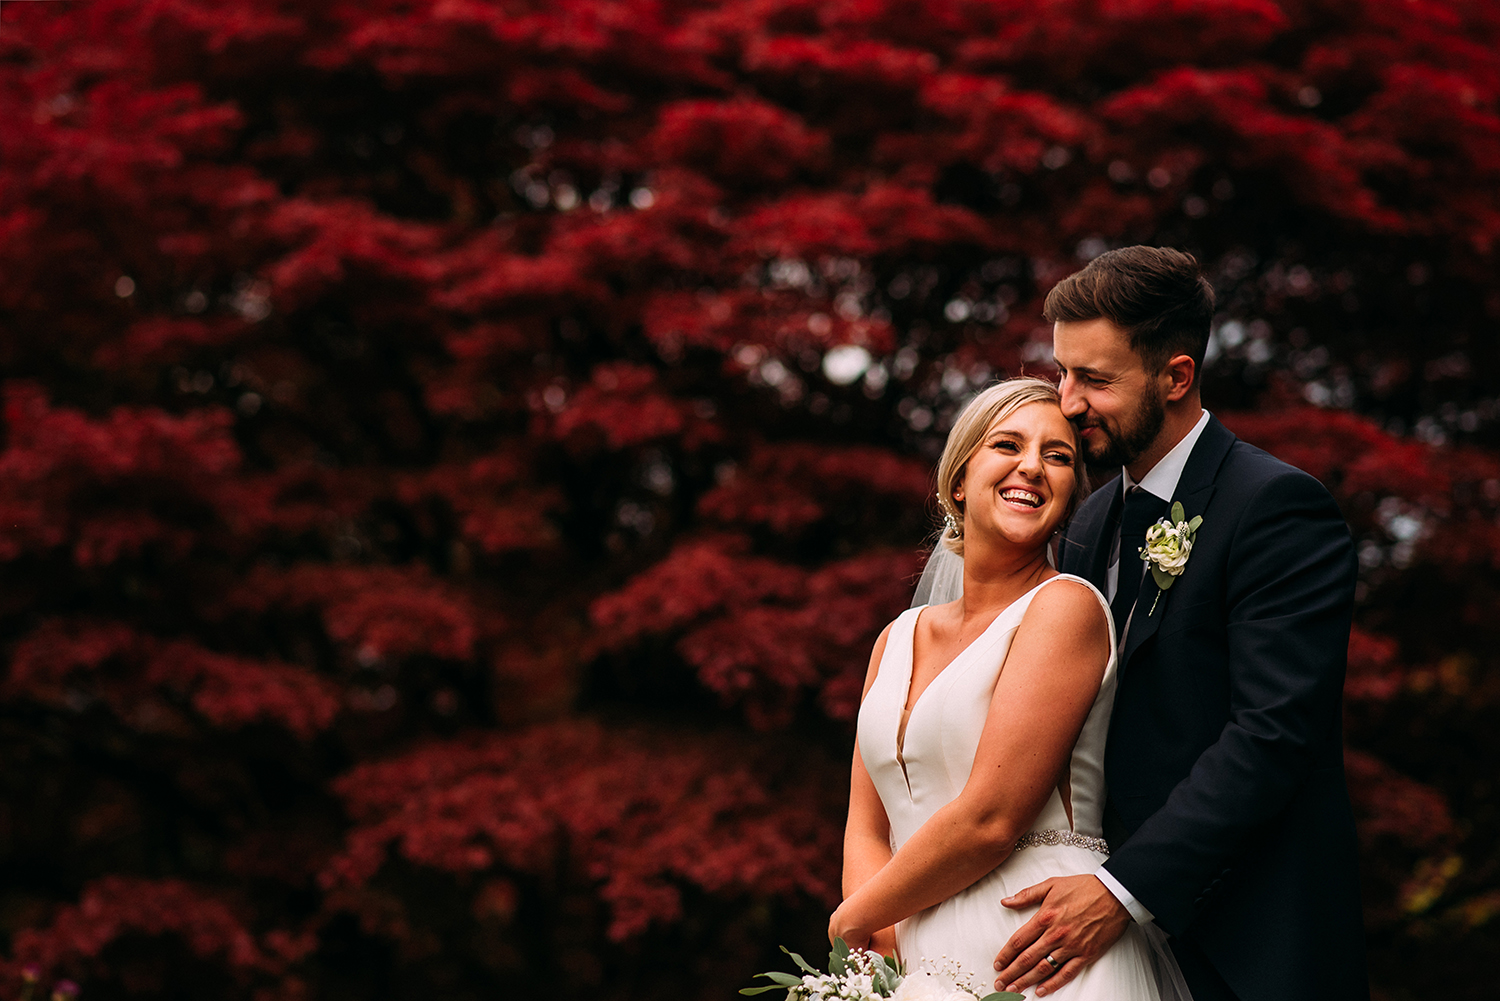 bride and groom in front of the red leaves at Eaves hall